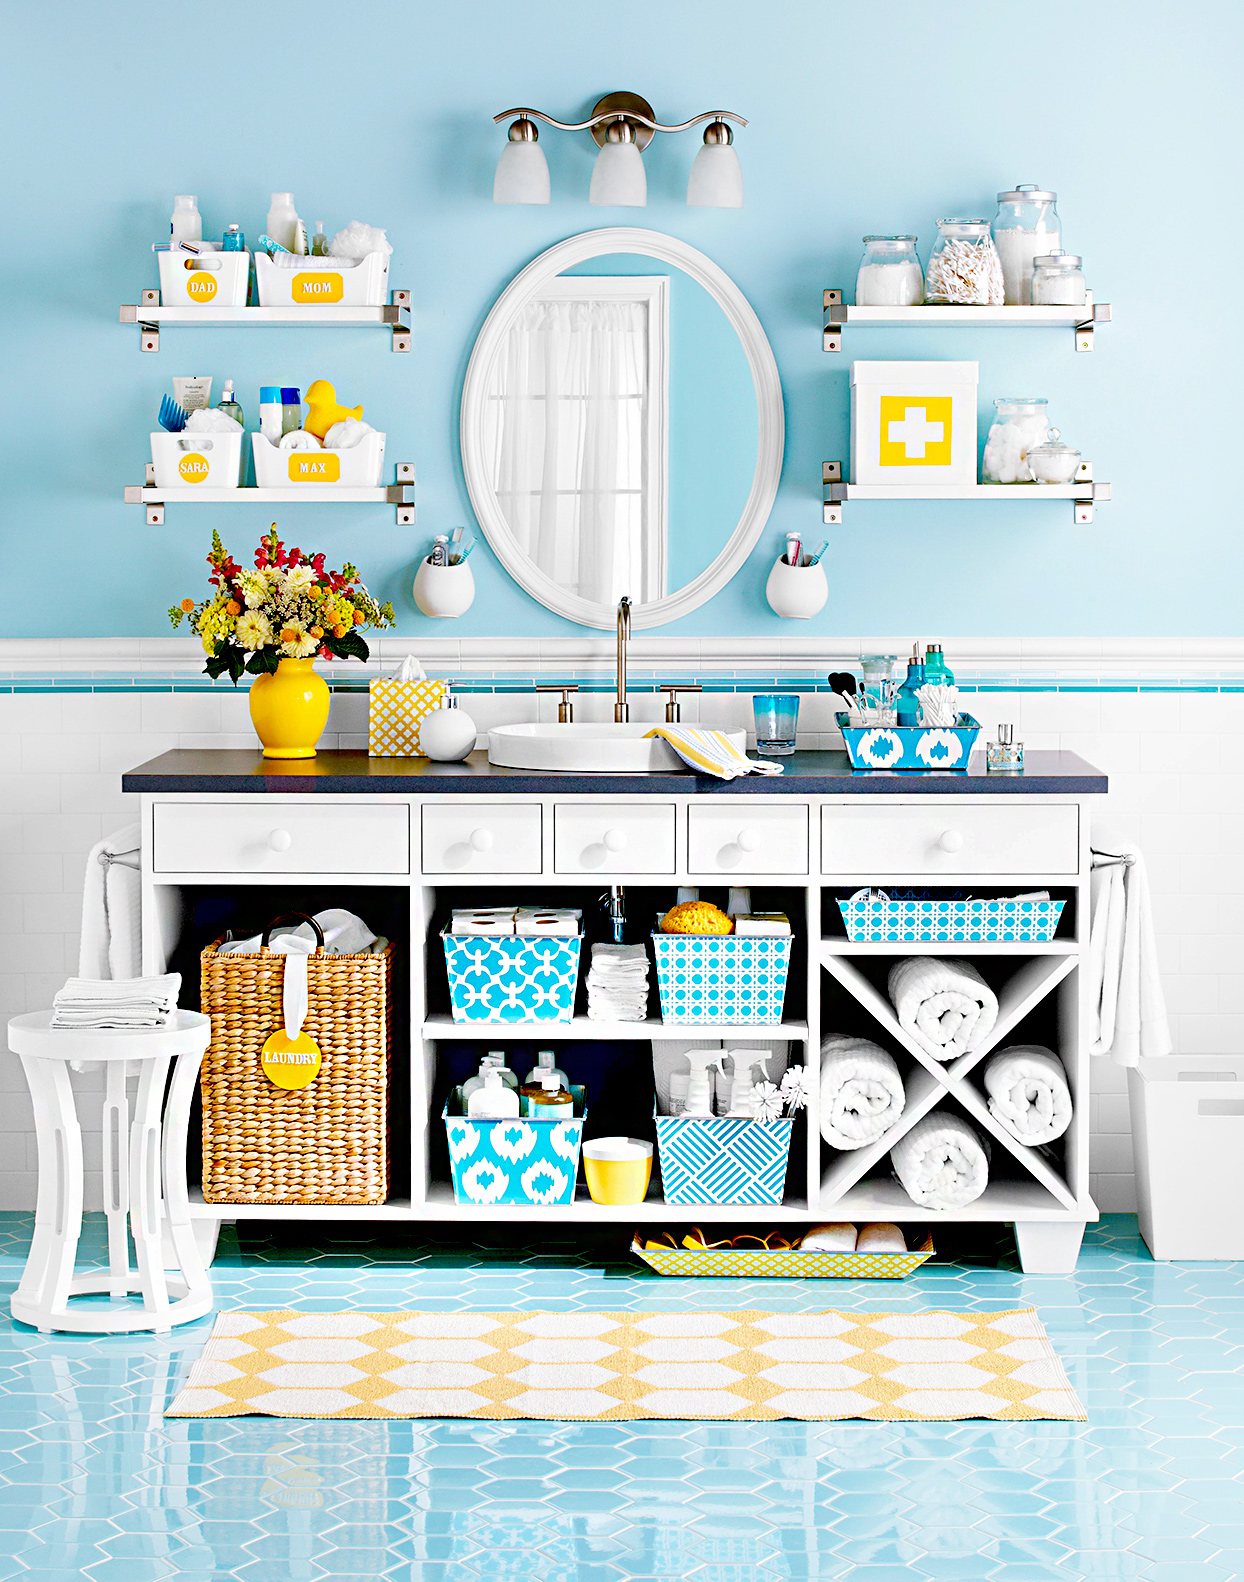 Yellow and blue bathroom with cupboard storage